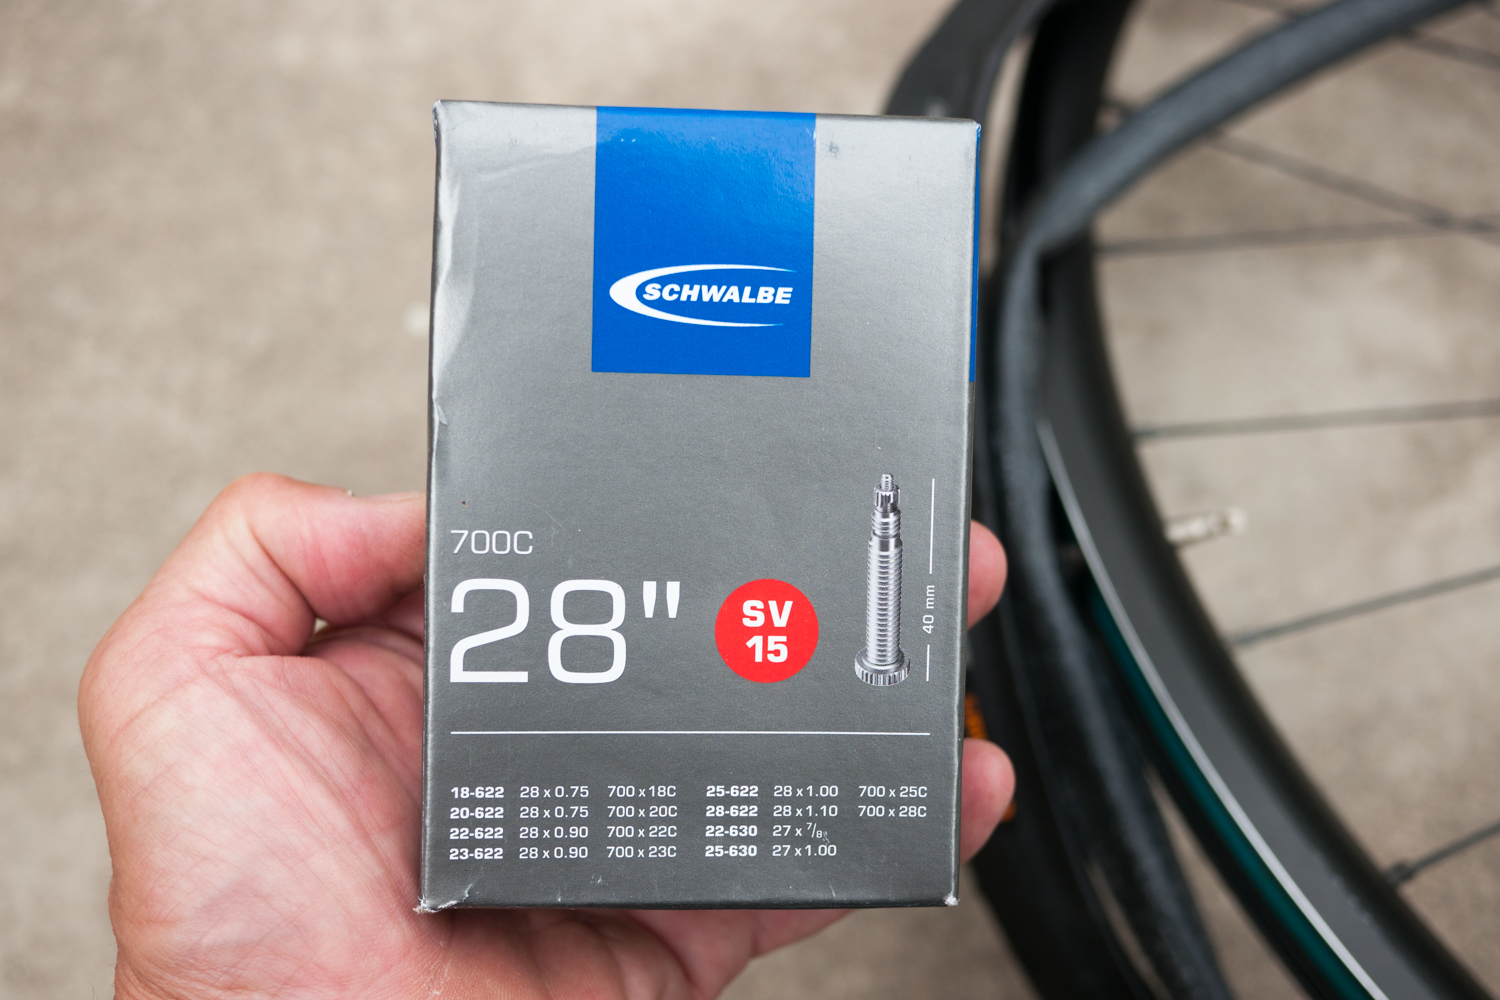 Scwalbe SV15 inner tube road cycling